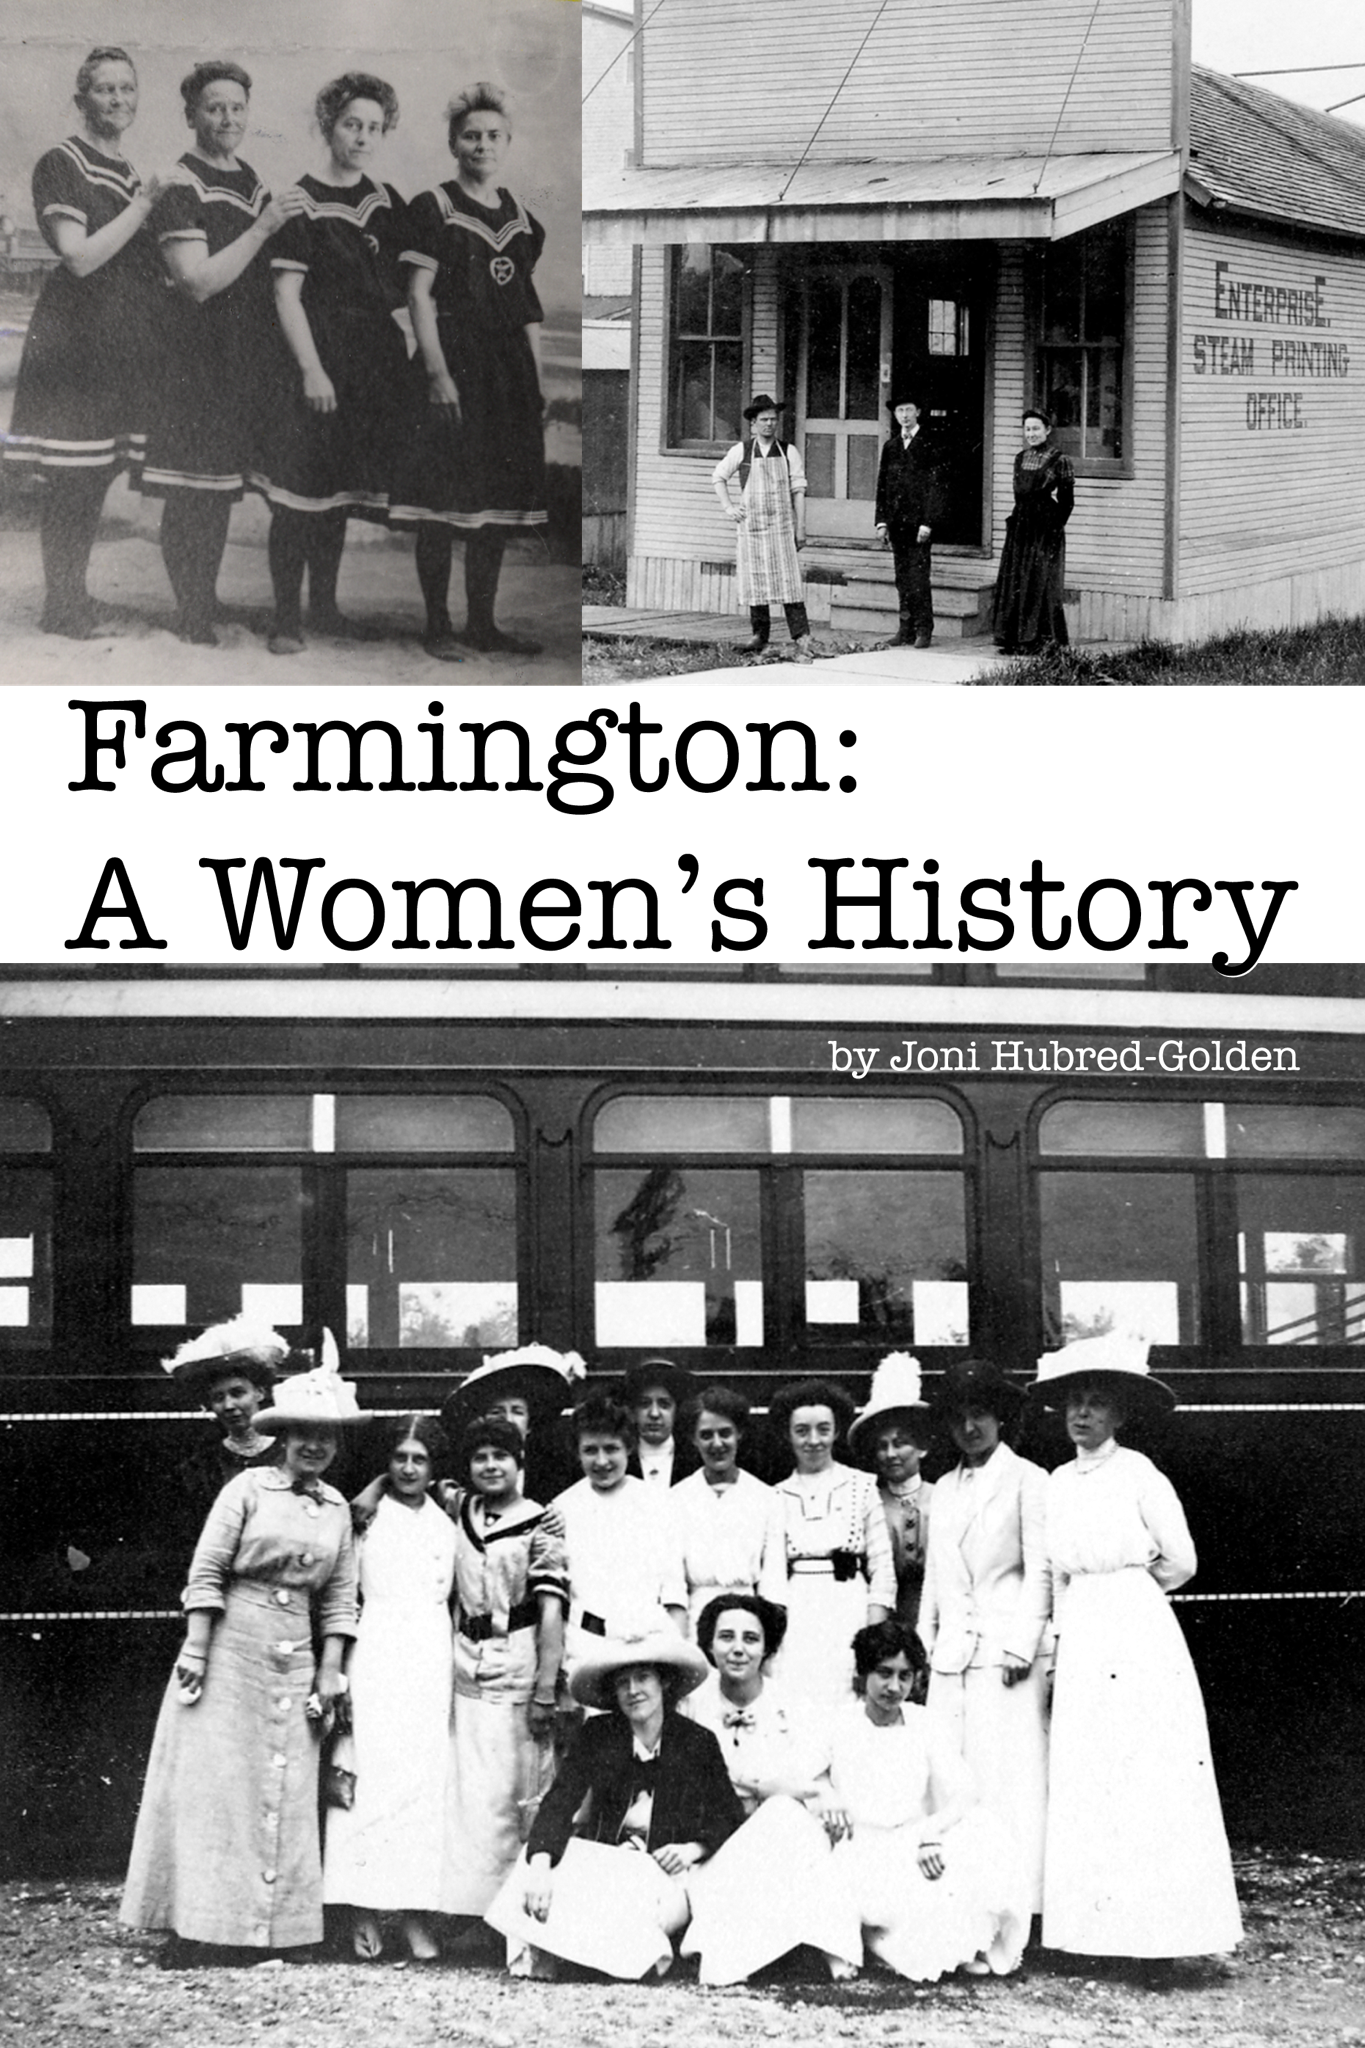 Join us for a book release party for Farmington: A Women's History